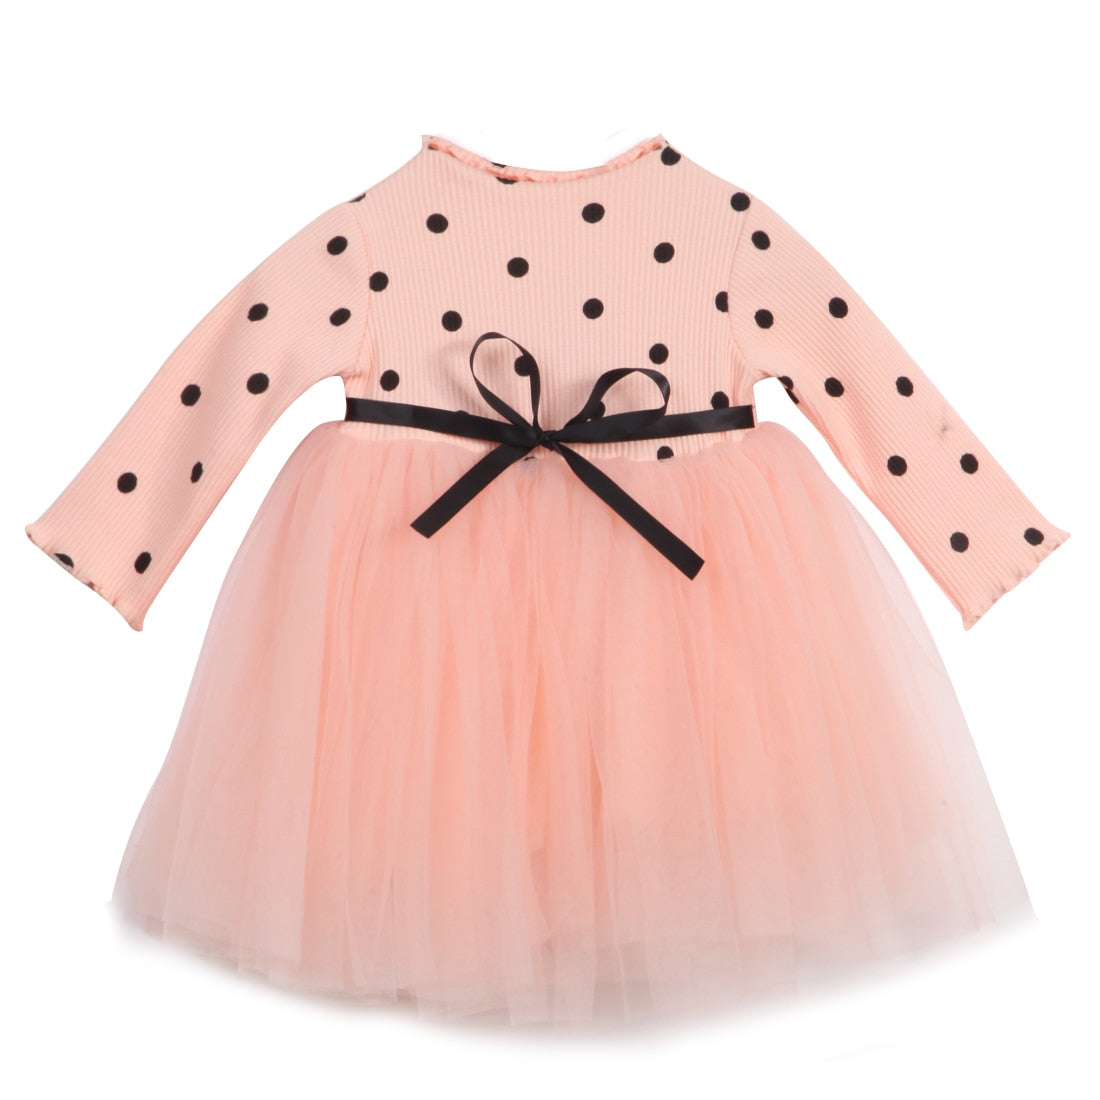 Vestido Baby Girl Princess Party de 0 a 4 anos-IncomunStore